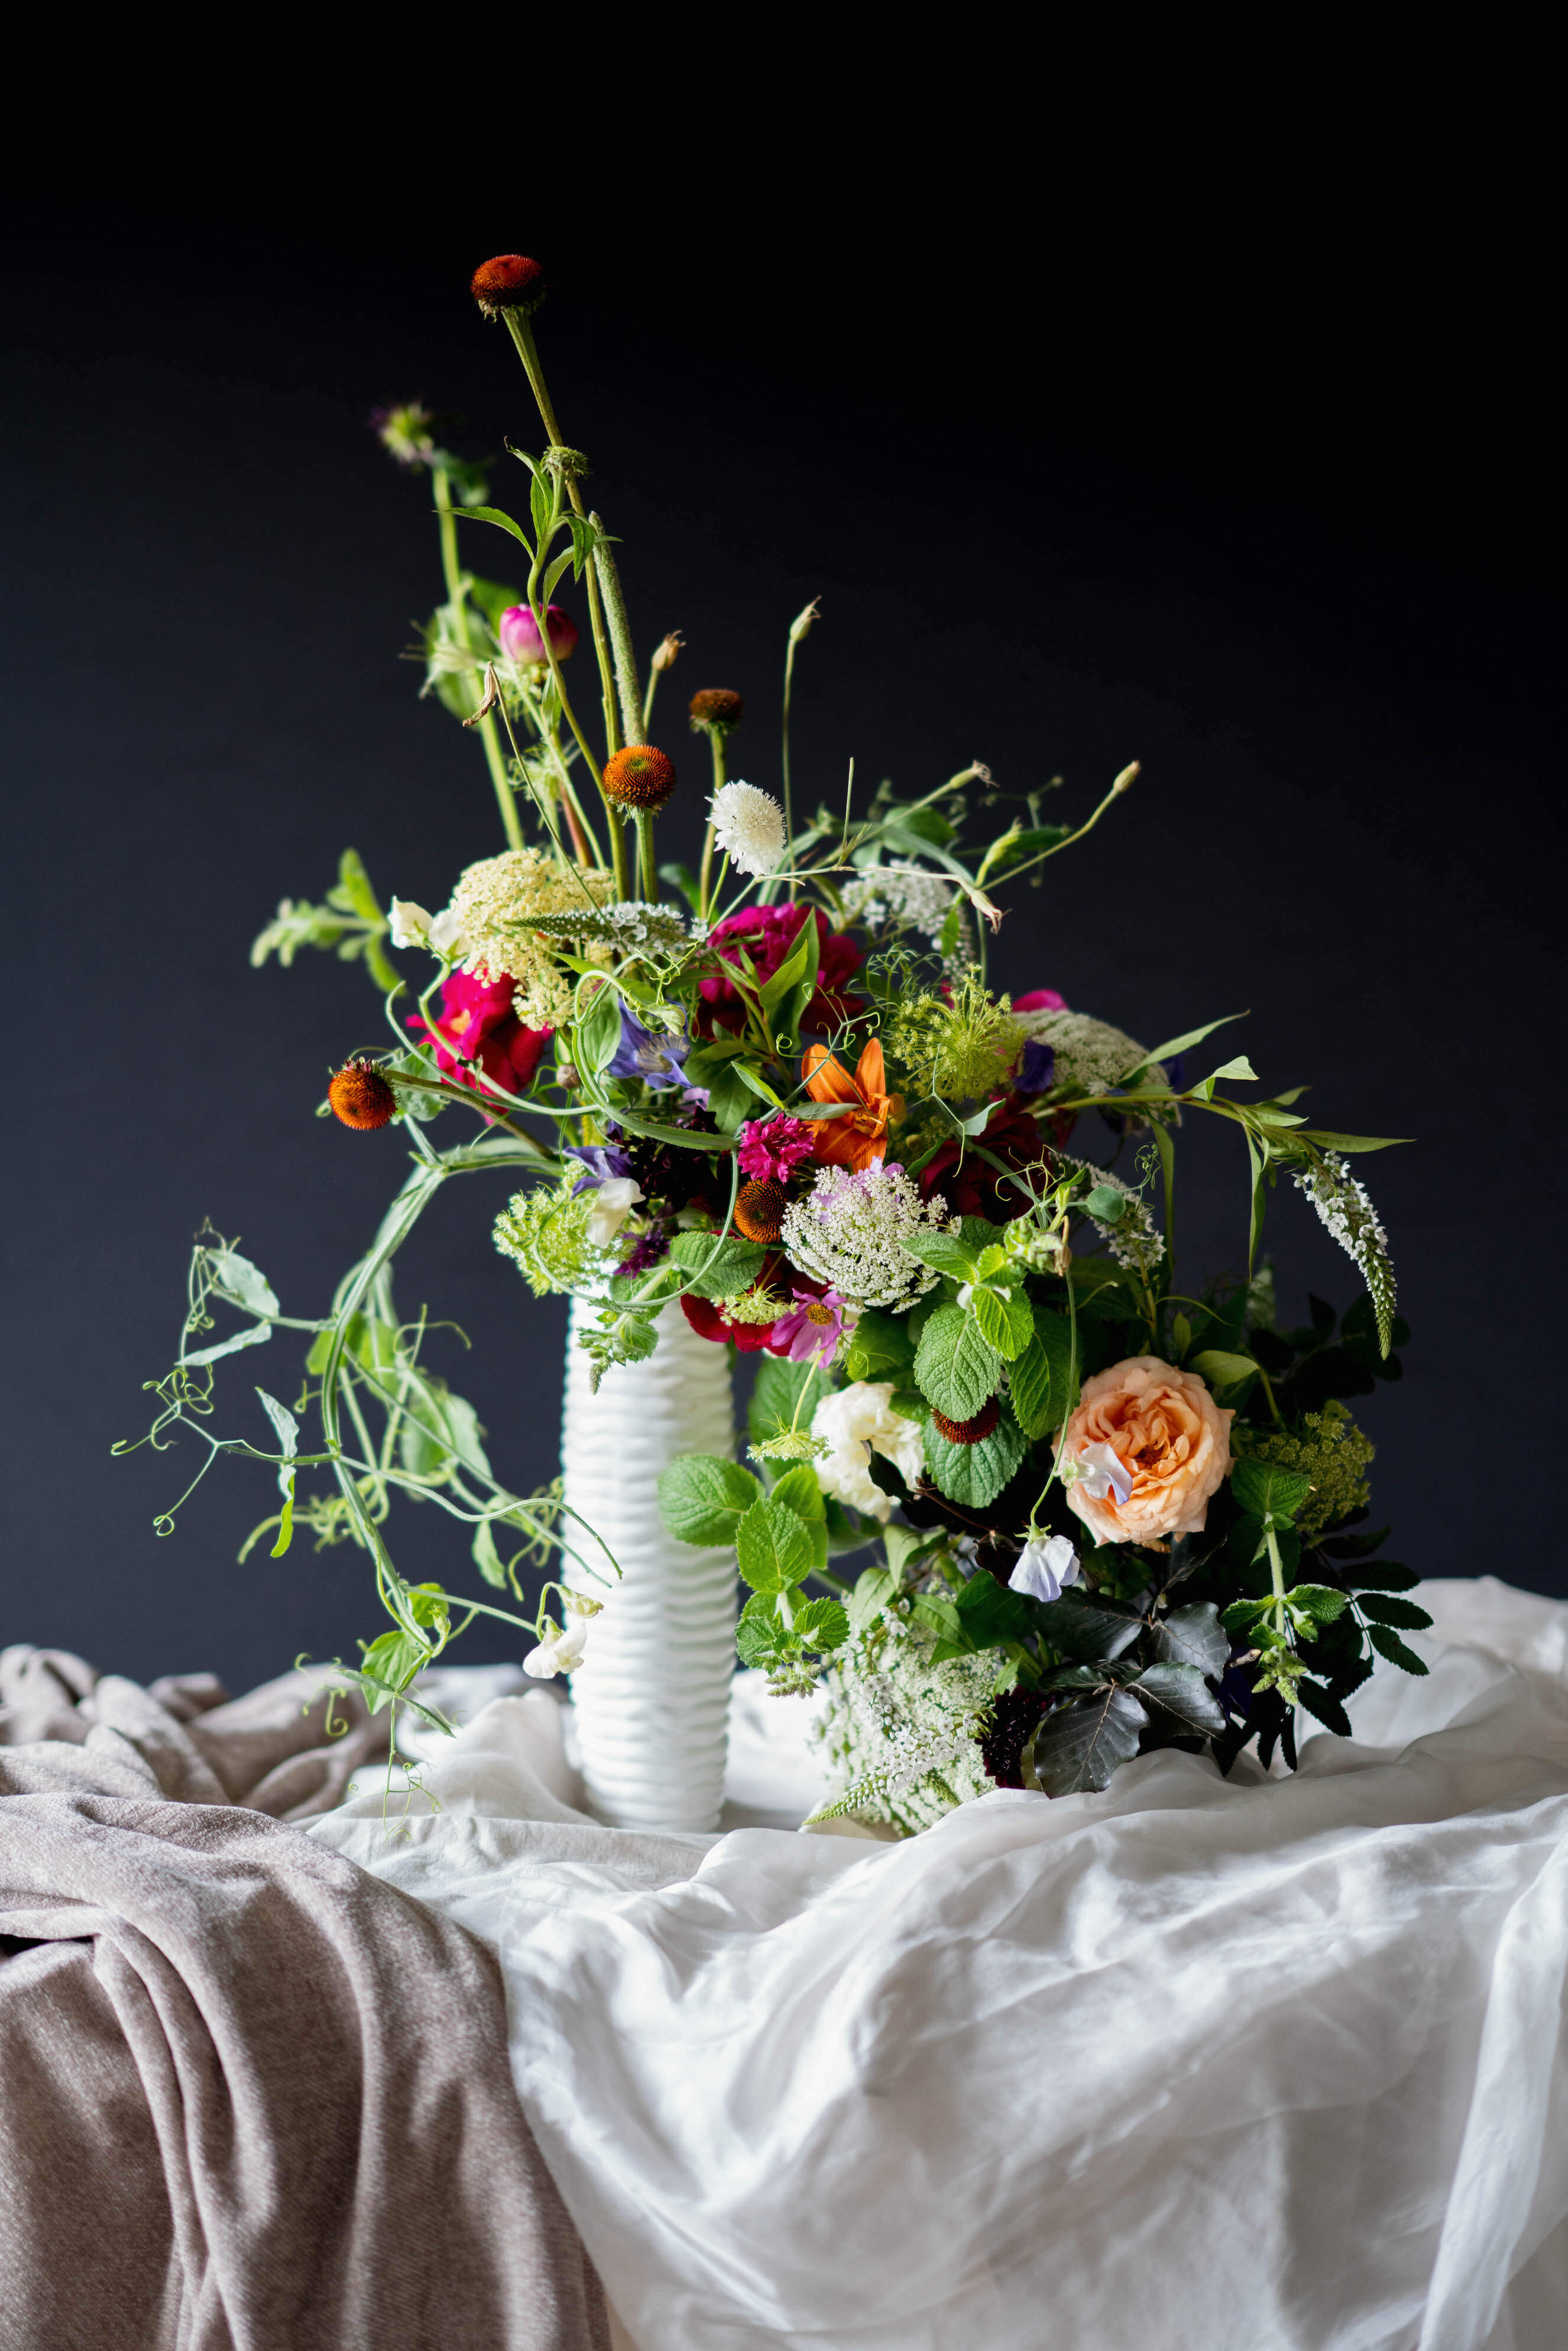 Flower Arrangement in a Tall Vase